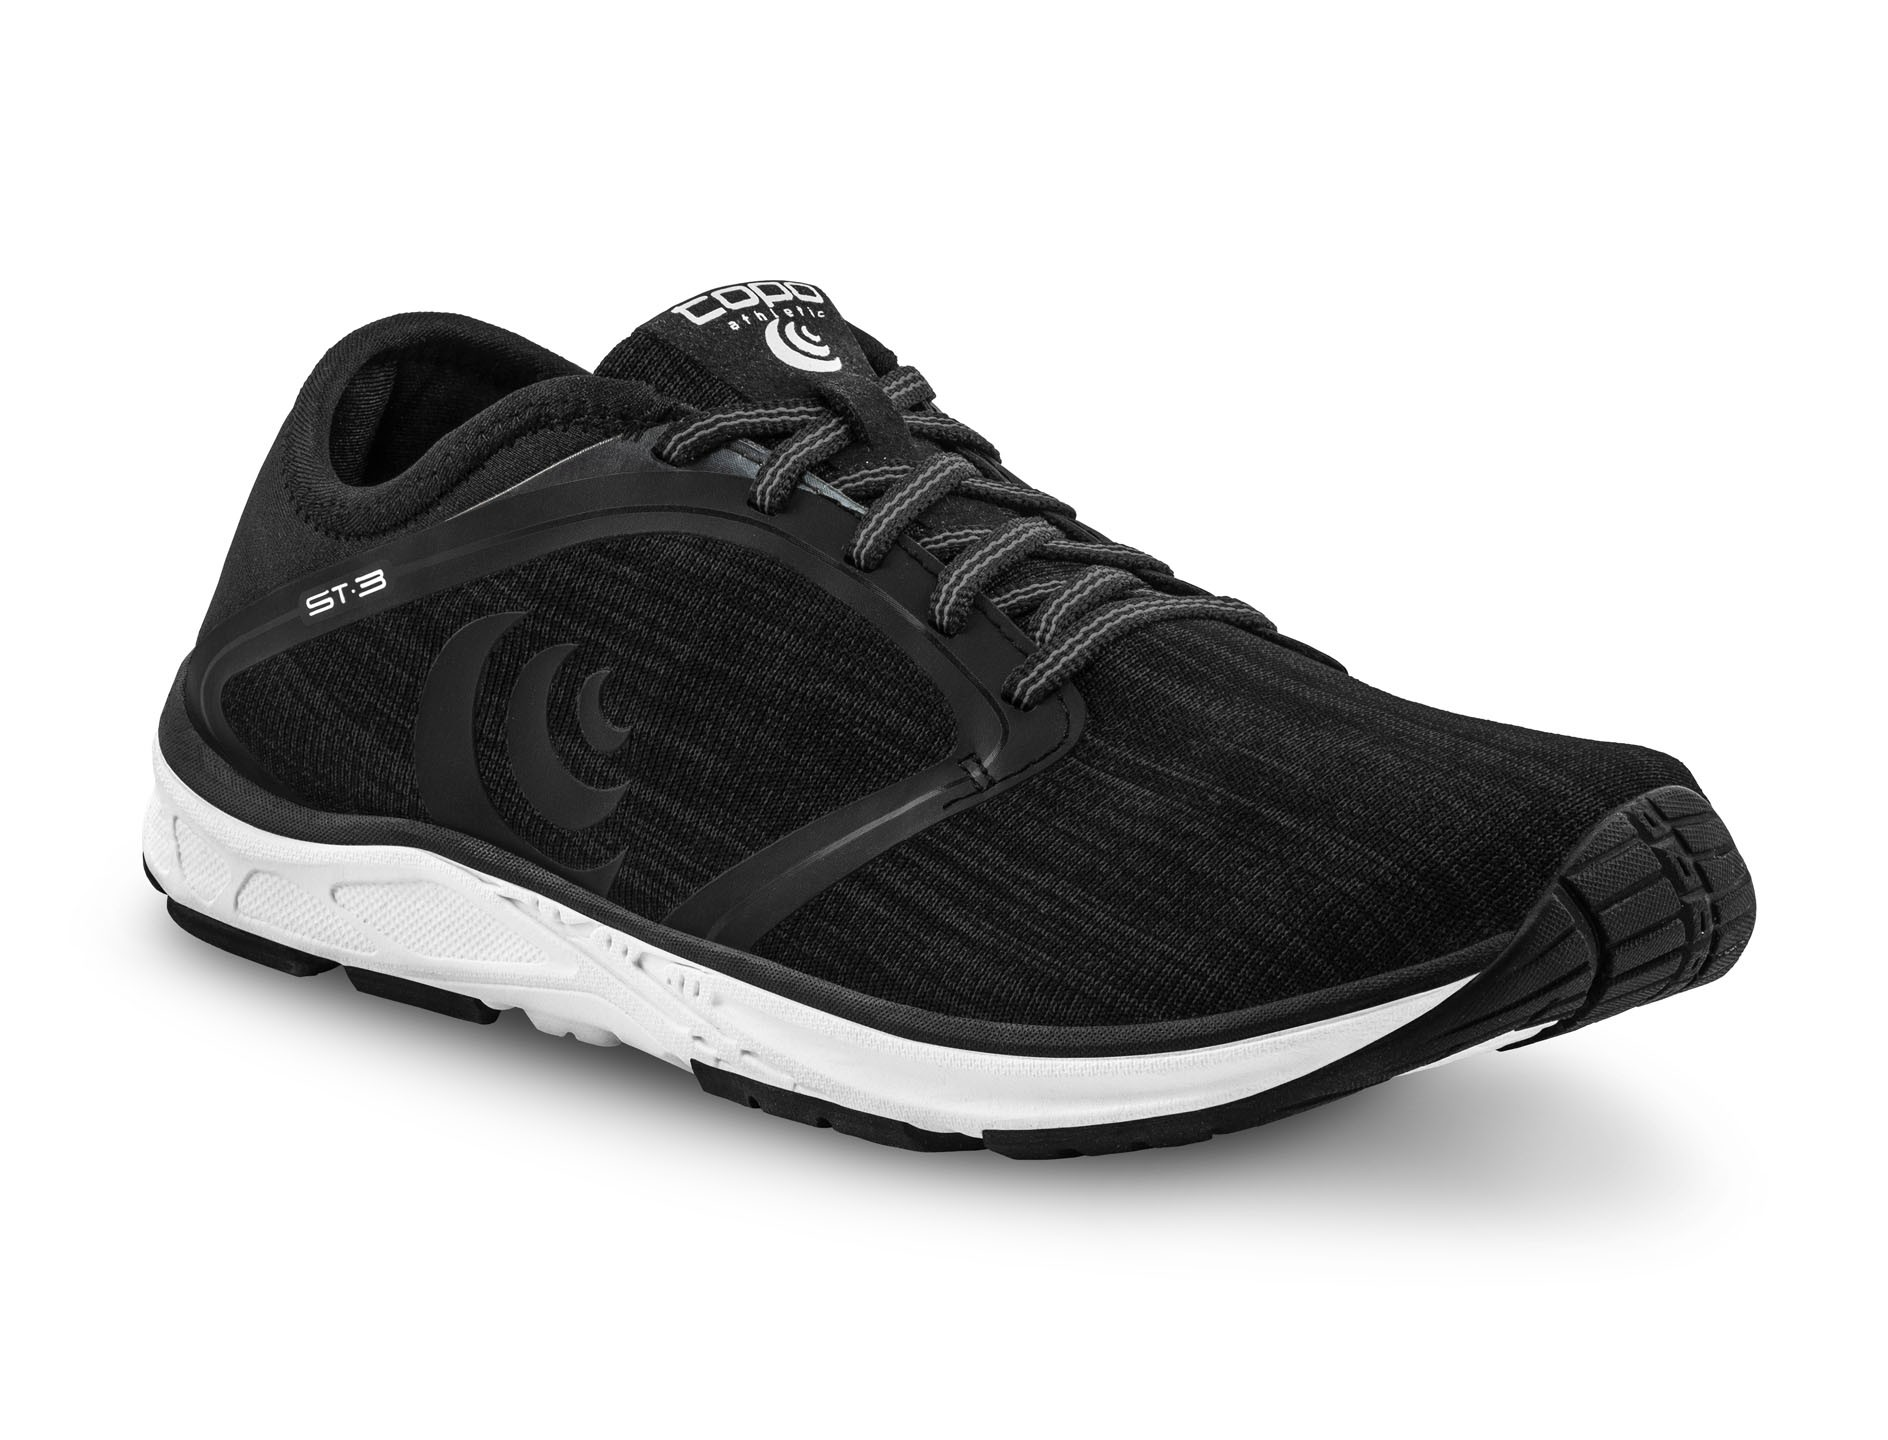 Size 10.5 Topo Athletic Mens ST-3 Road Running Shoes Black//Grey